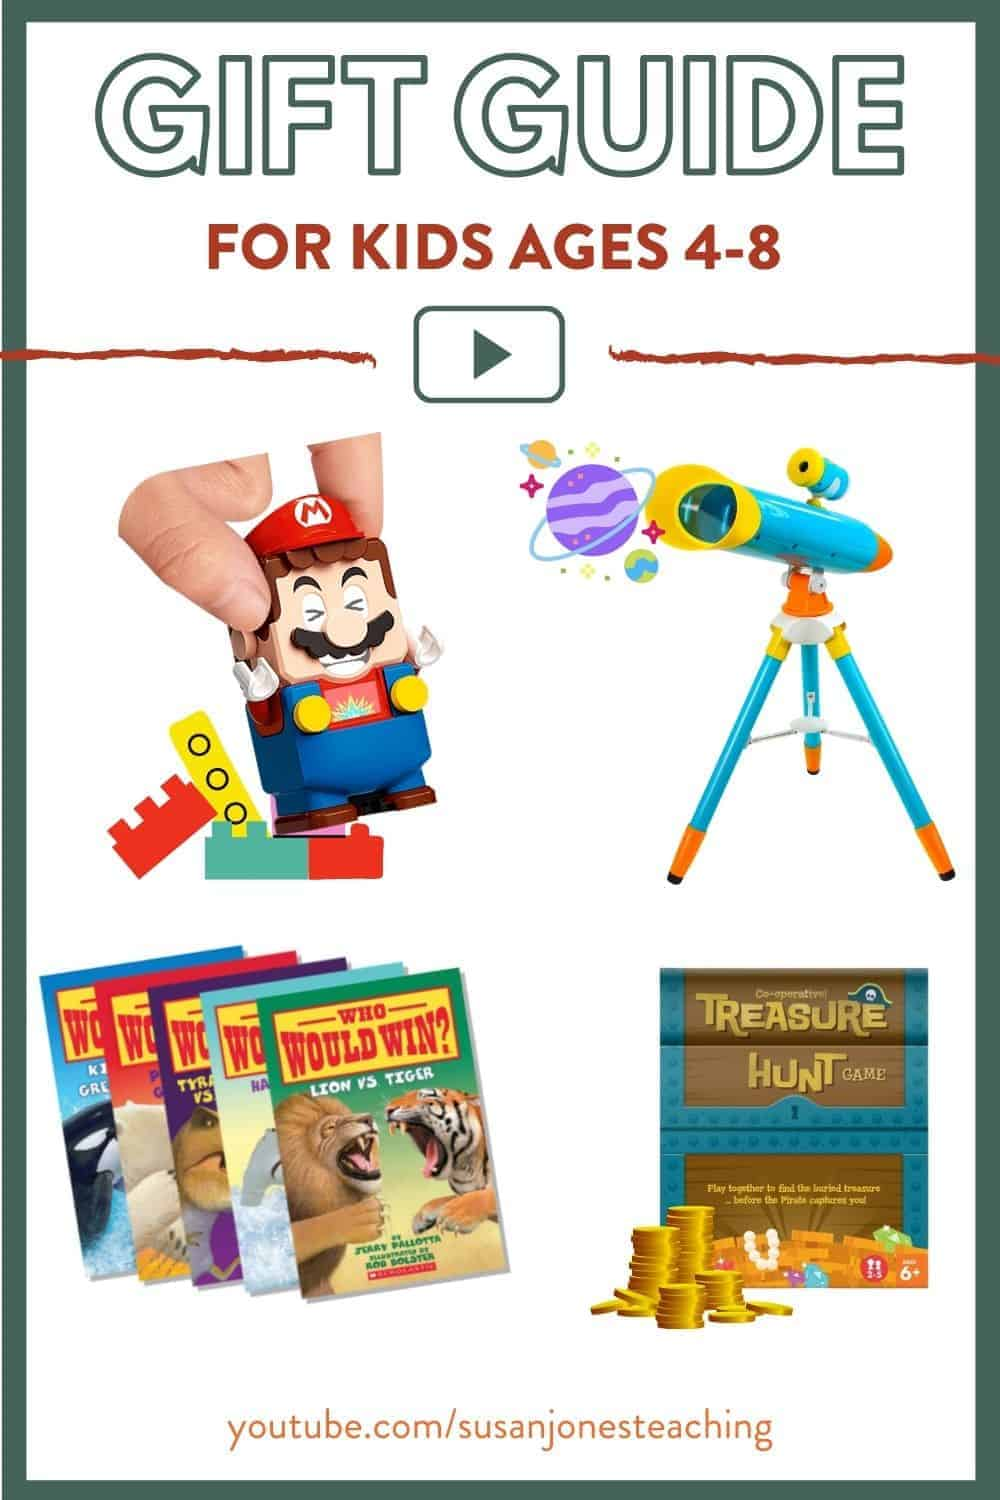 Wondering what gifts to buy young kids in 2020?! I made a gift guide just for you with 6 of my FAVORITE gifts for kids this year! Head on over to the blog post to see more about each one!